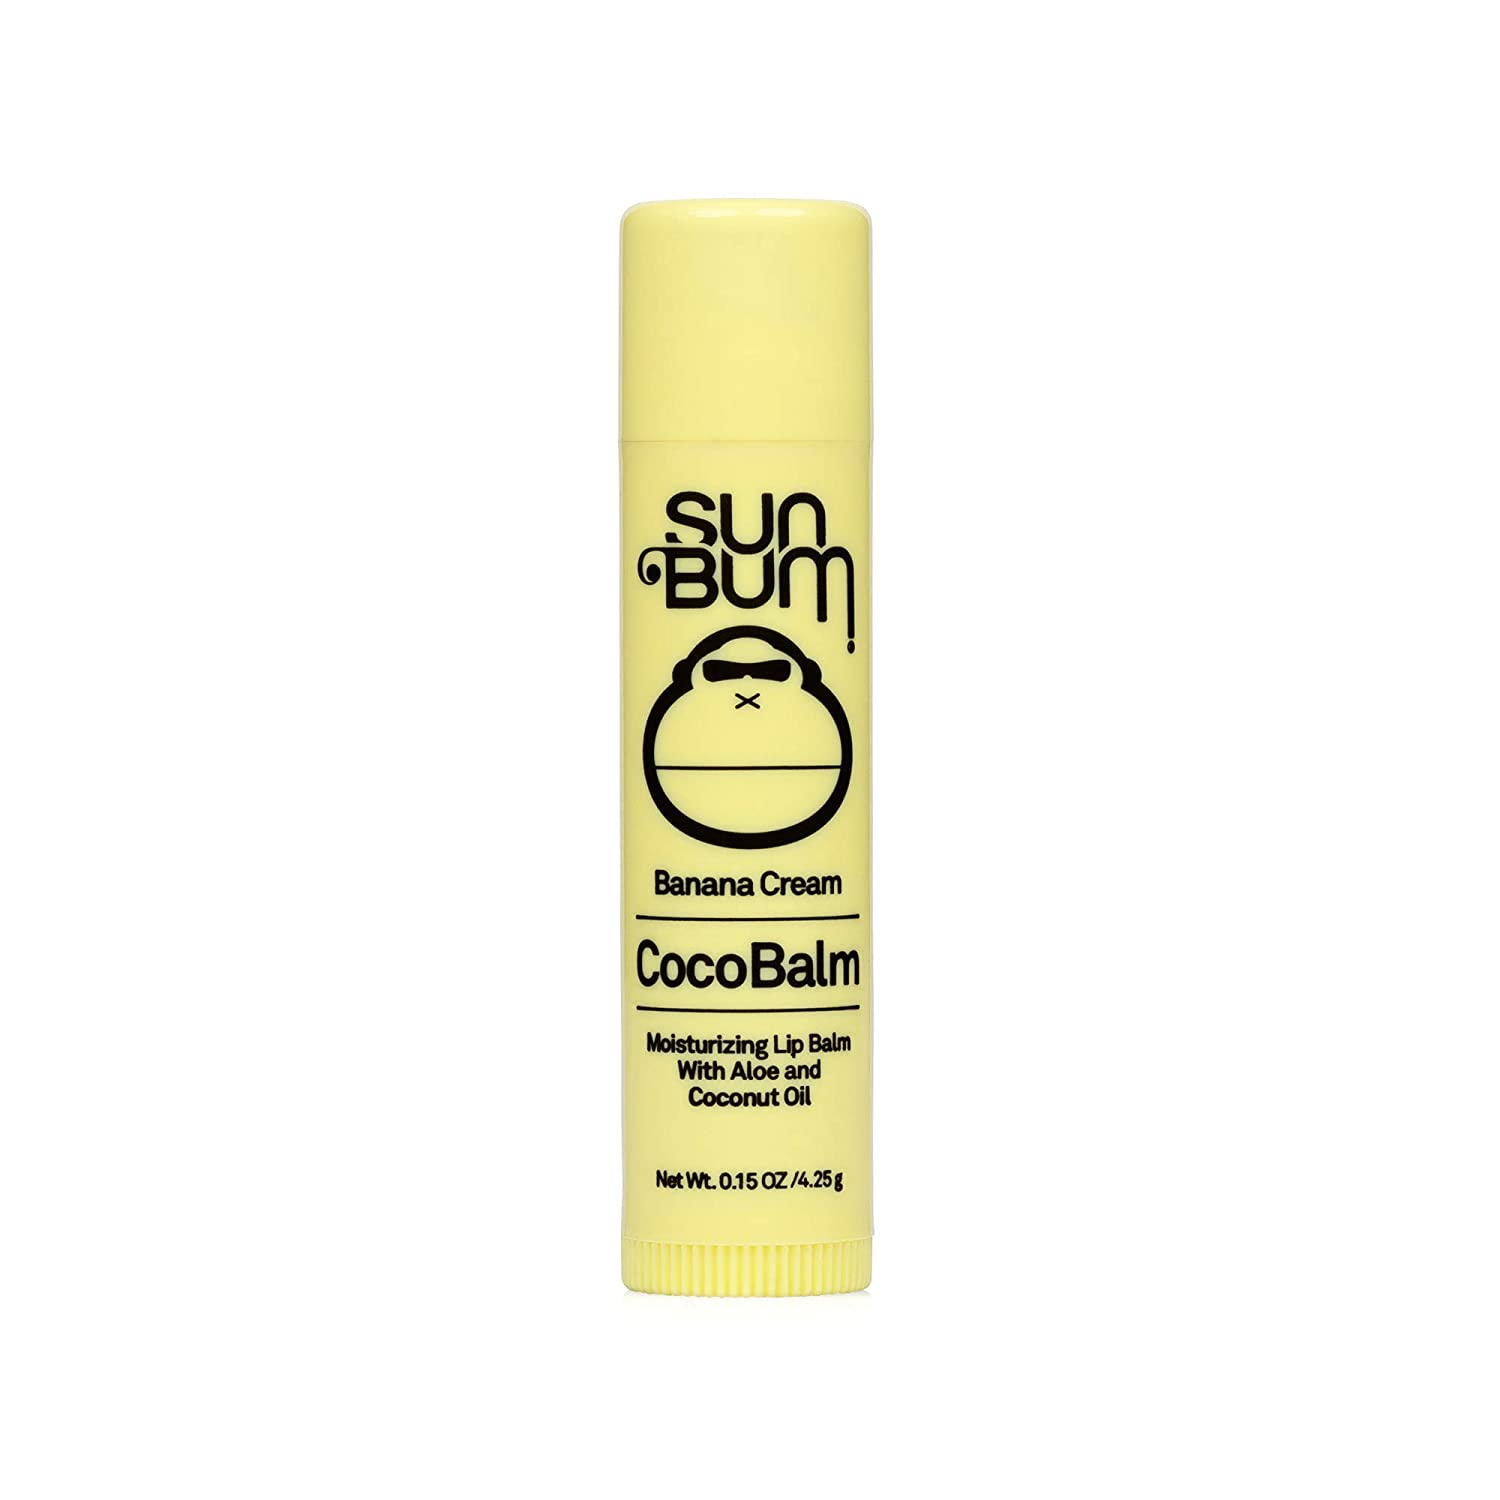 Sun Bum Banana Cream Cocobalm | Hydrating Lip Balm with Aloe | Hypoallergenic, Paraben Free, Silicone Free,| 0.15oz Stick